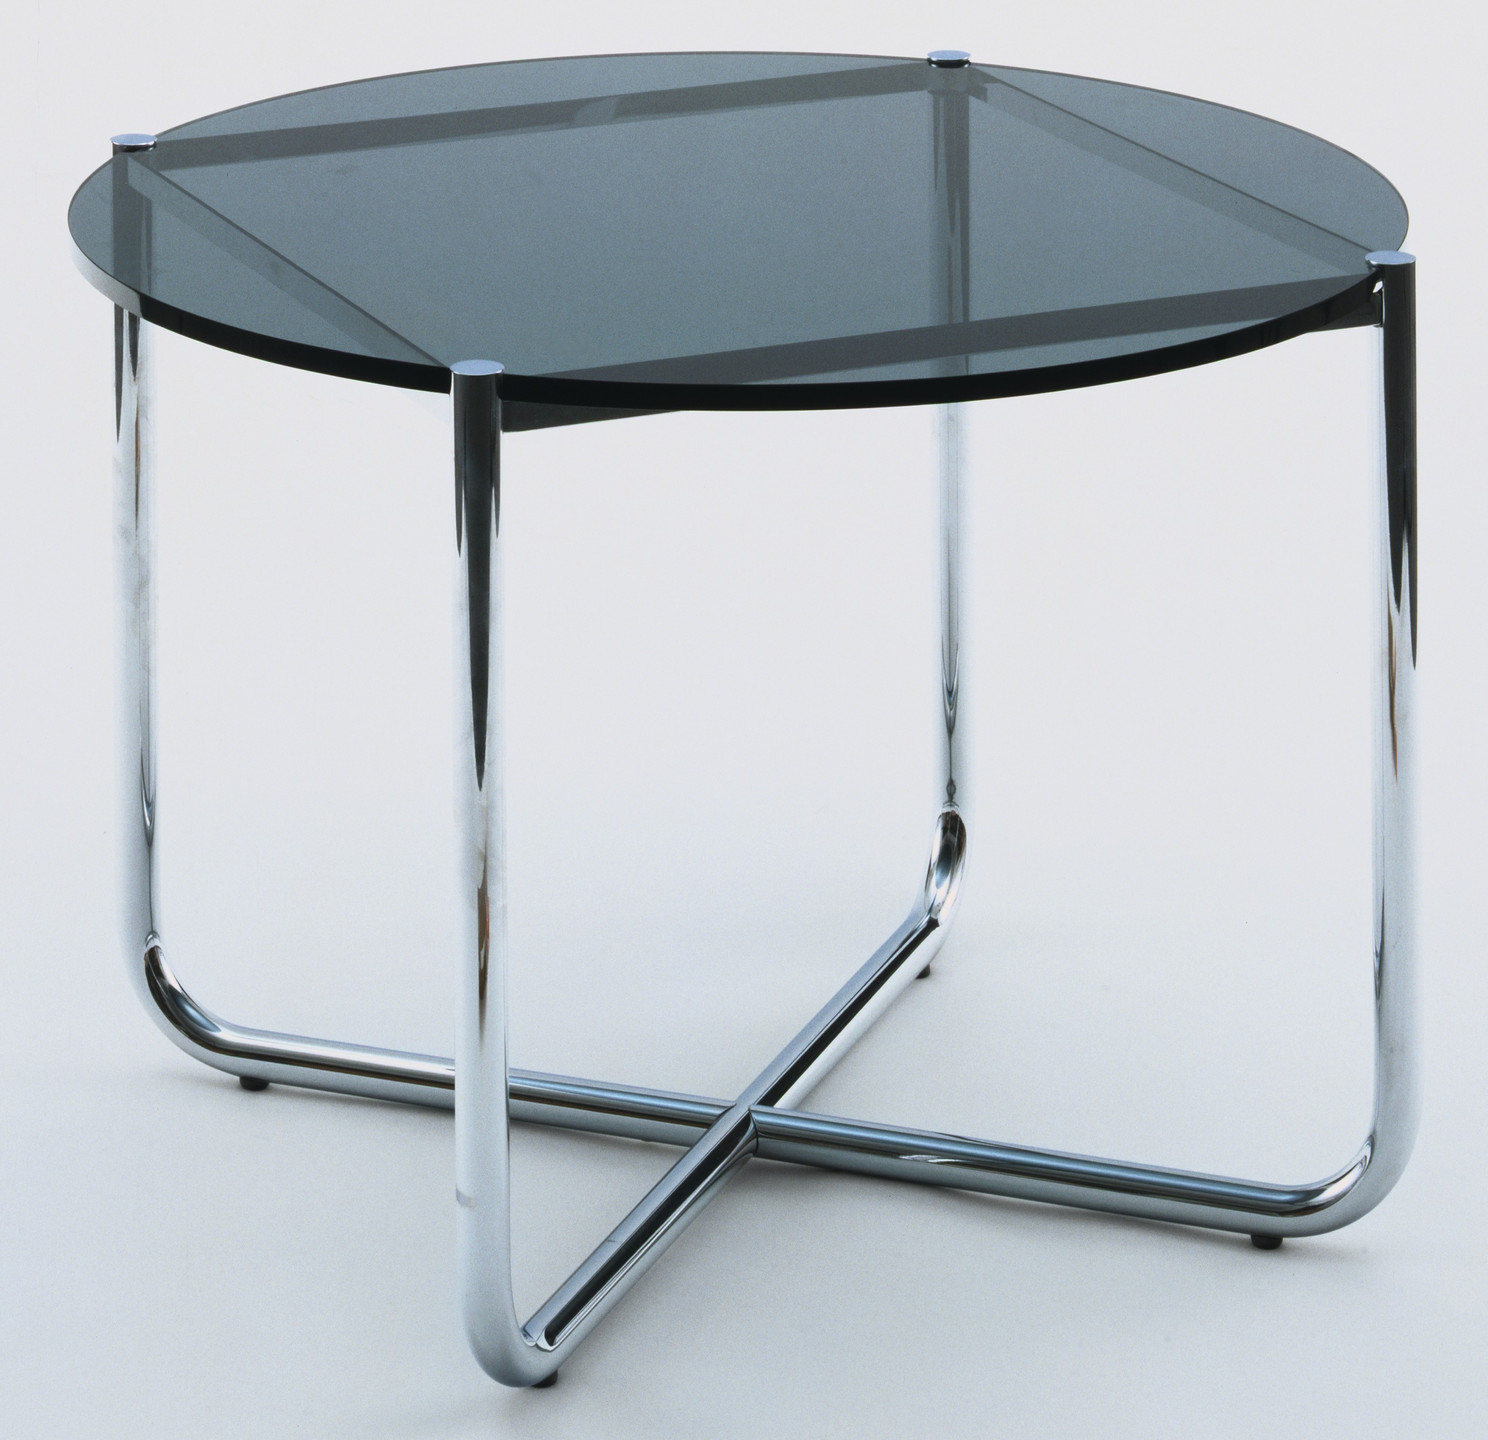 Ludwig Mies van der Rohe. MR Coffee Table (This example manufactured 1976). Designed 1927 (this example 1976)